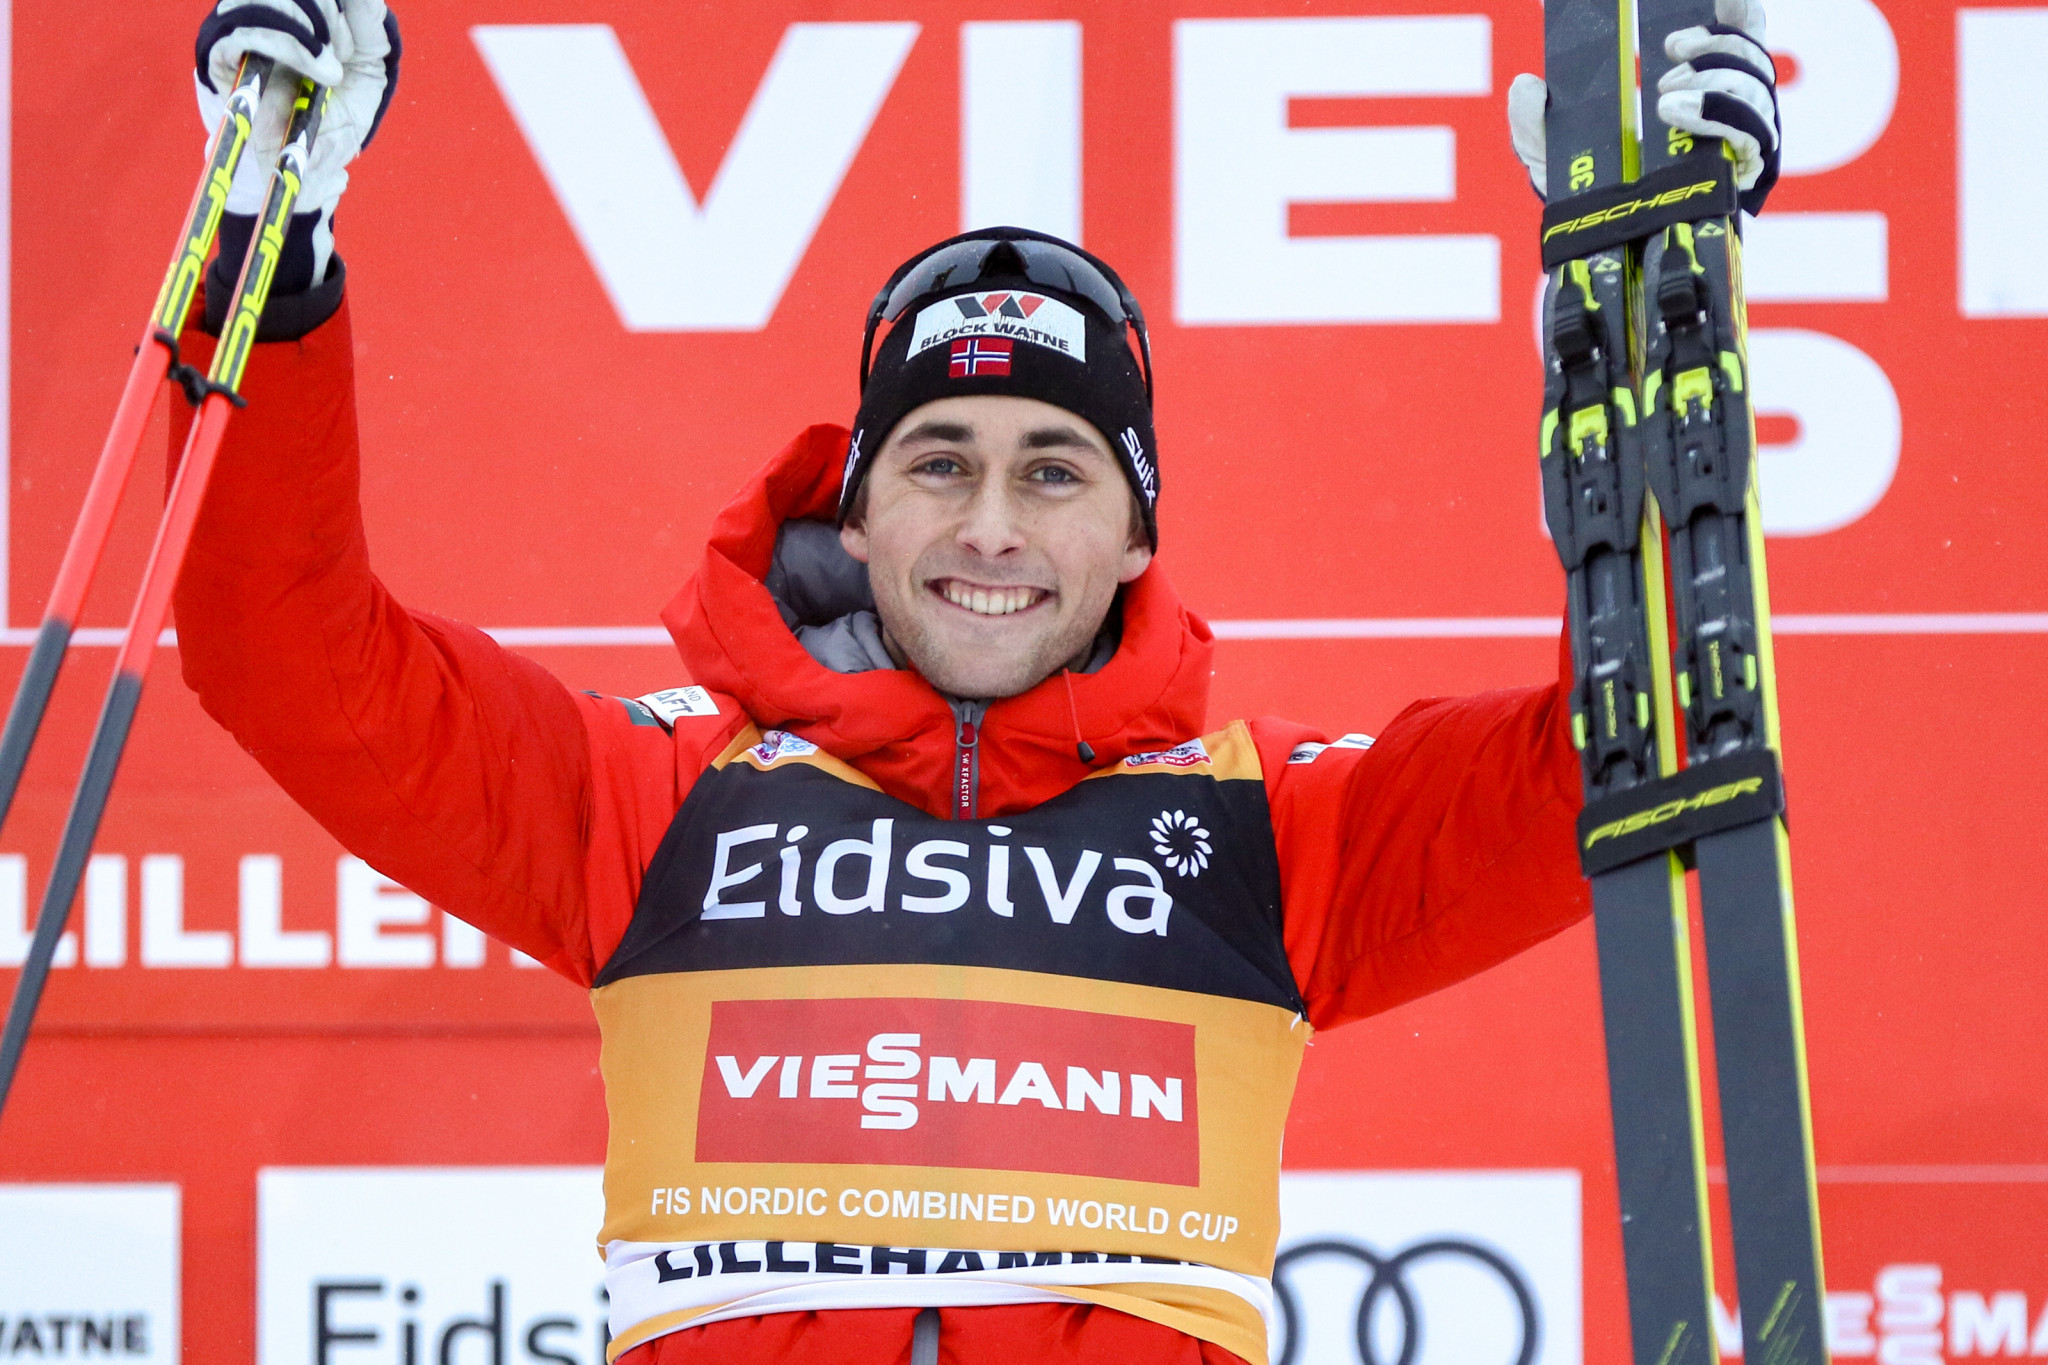 Riiber makes it five wins in a row on FIS Nordic Combined World Cup tour